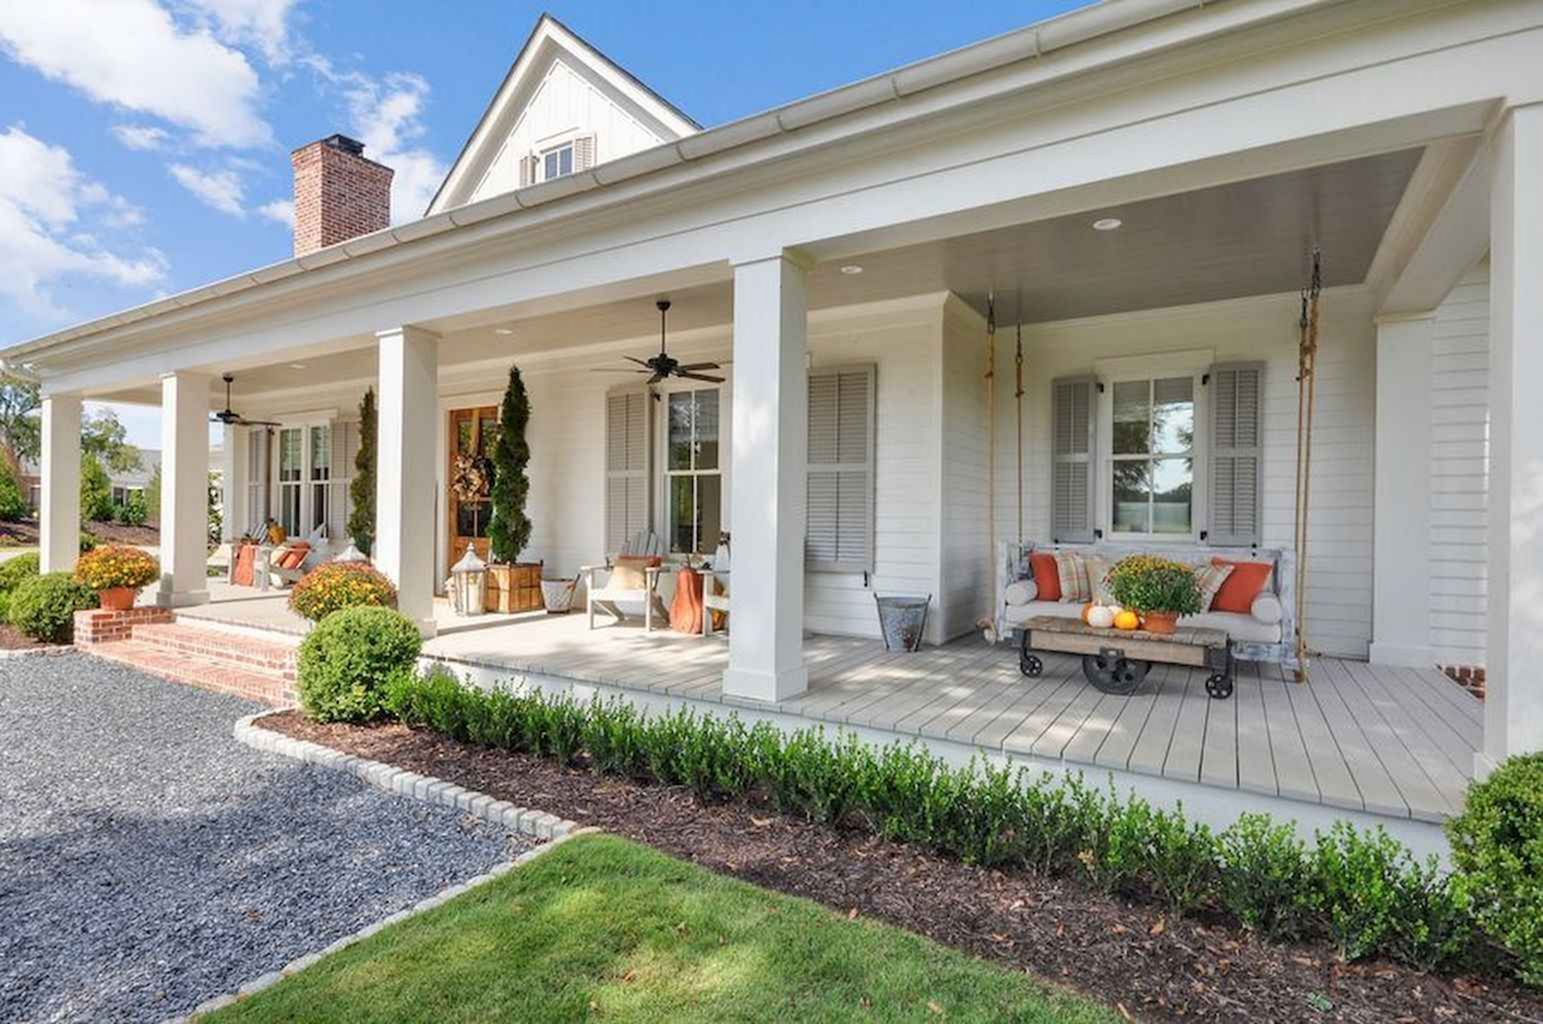 9 Stunning Modern Farmhouse Front Porch Ideas For Place Relax Inspiration In 2020 Modern Farmhouse Exterior Porch Design House Designs Exterior